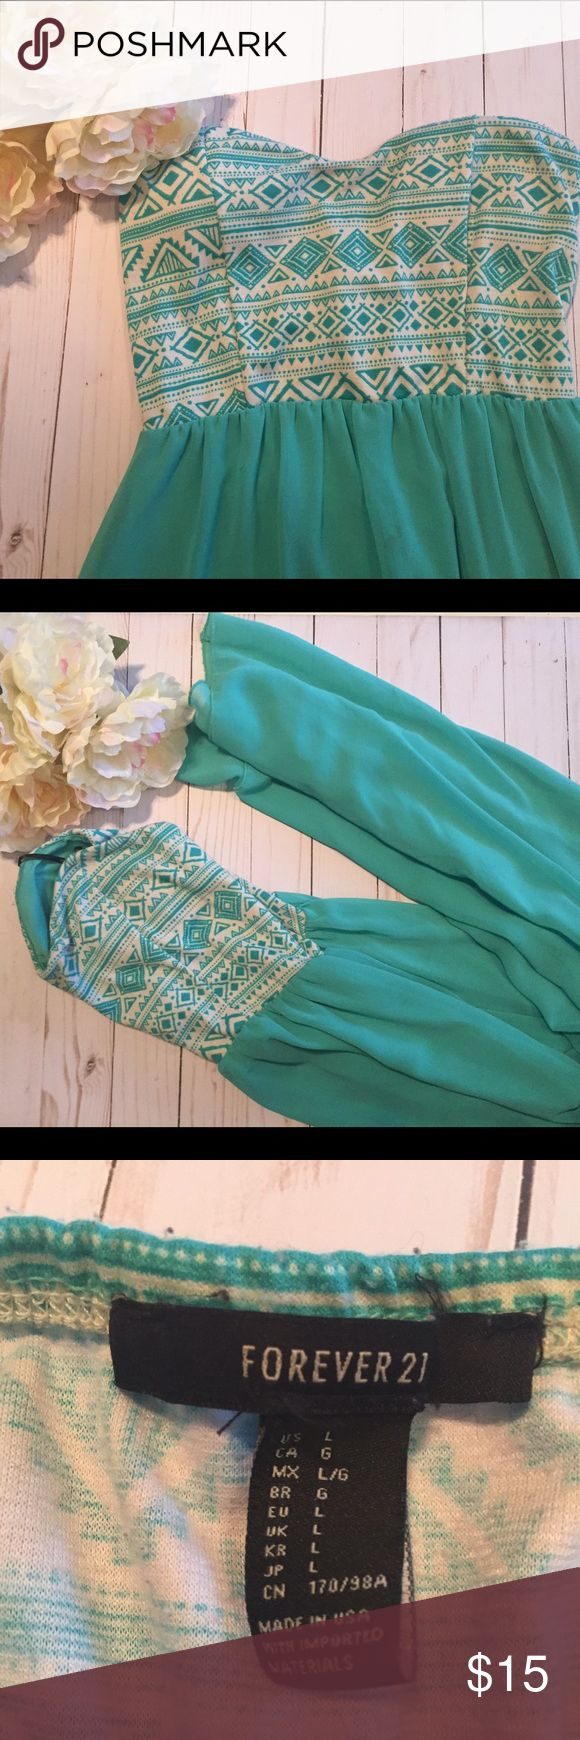 Aztec Maxi Dress Aqua/Teal Aztec patterned top Maxi Dress with a sheer flowy skirt. Short slit but otherwise see through flirty skirt. Very flattering sweetheart neckline with a fitted but stretchy bodice. Forever 21 Dresses Maxi